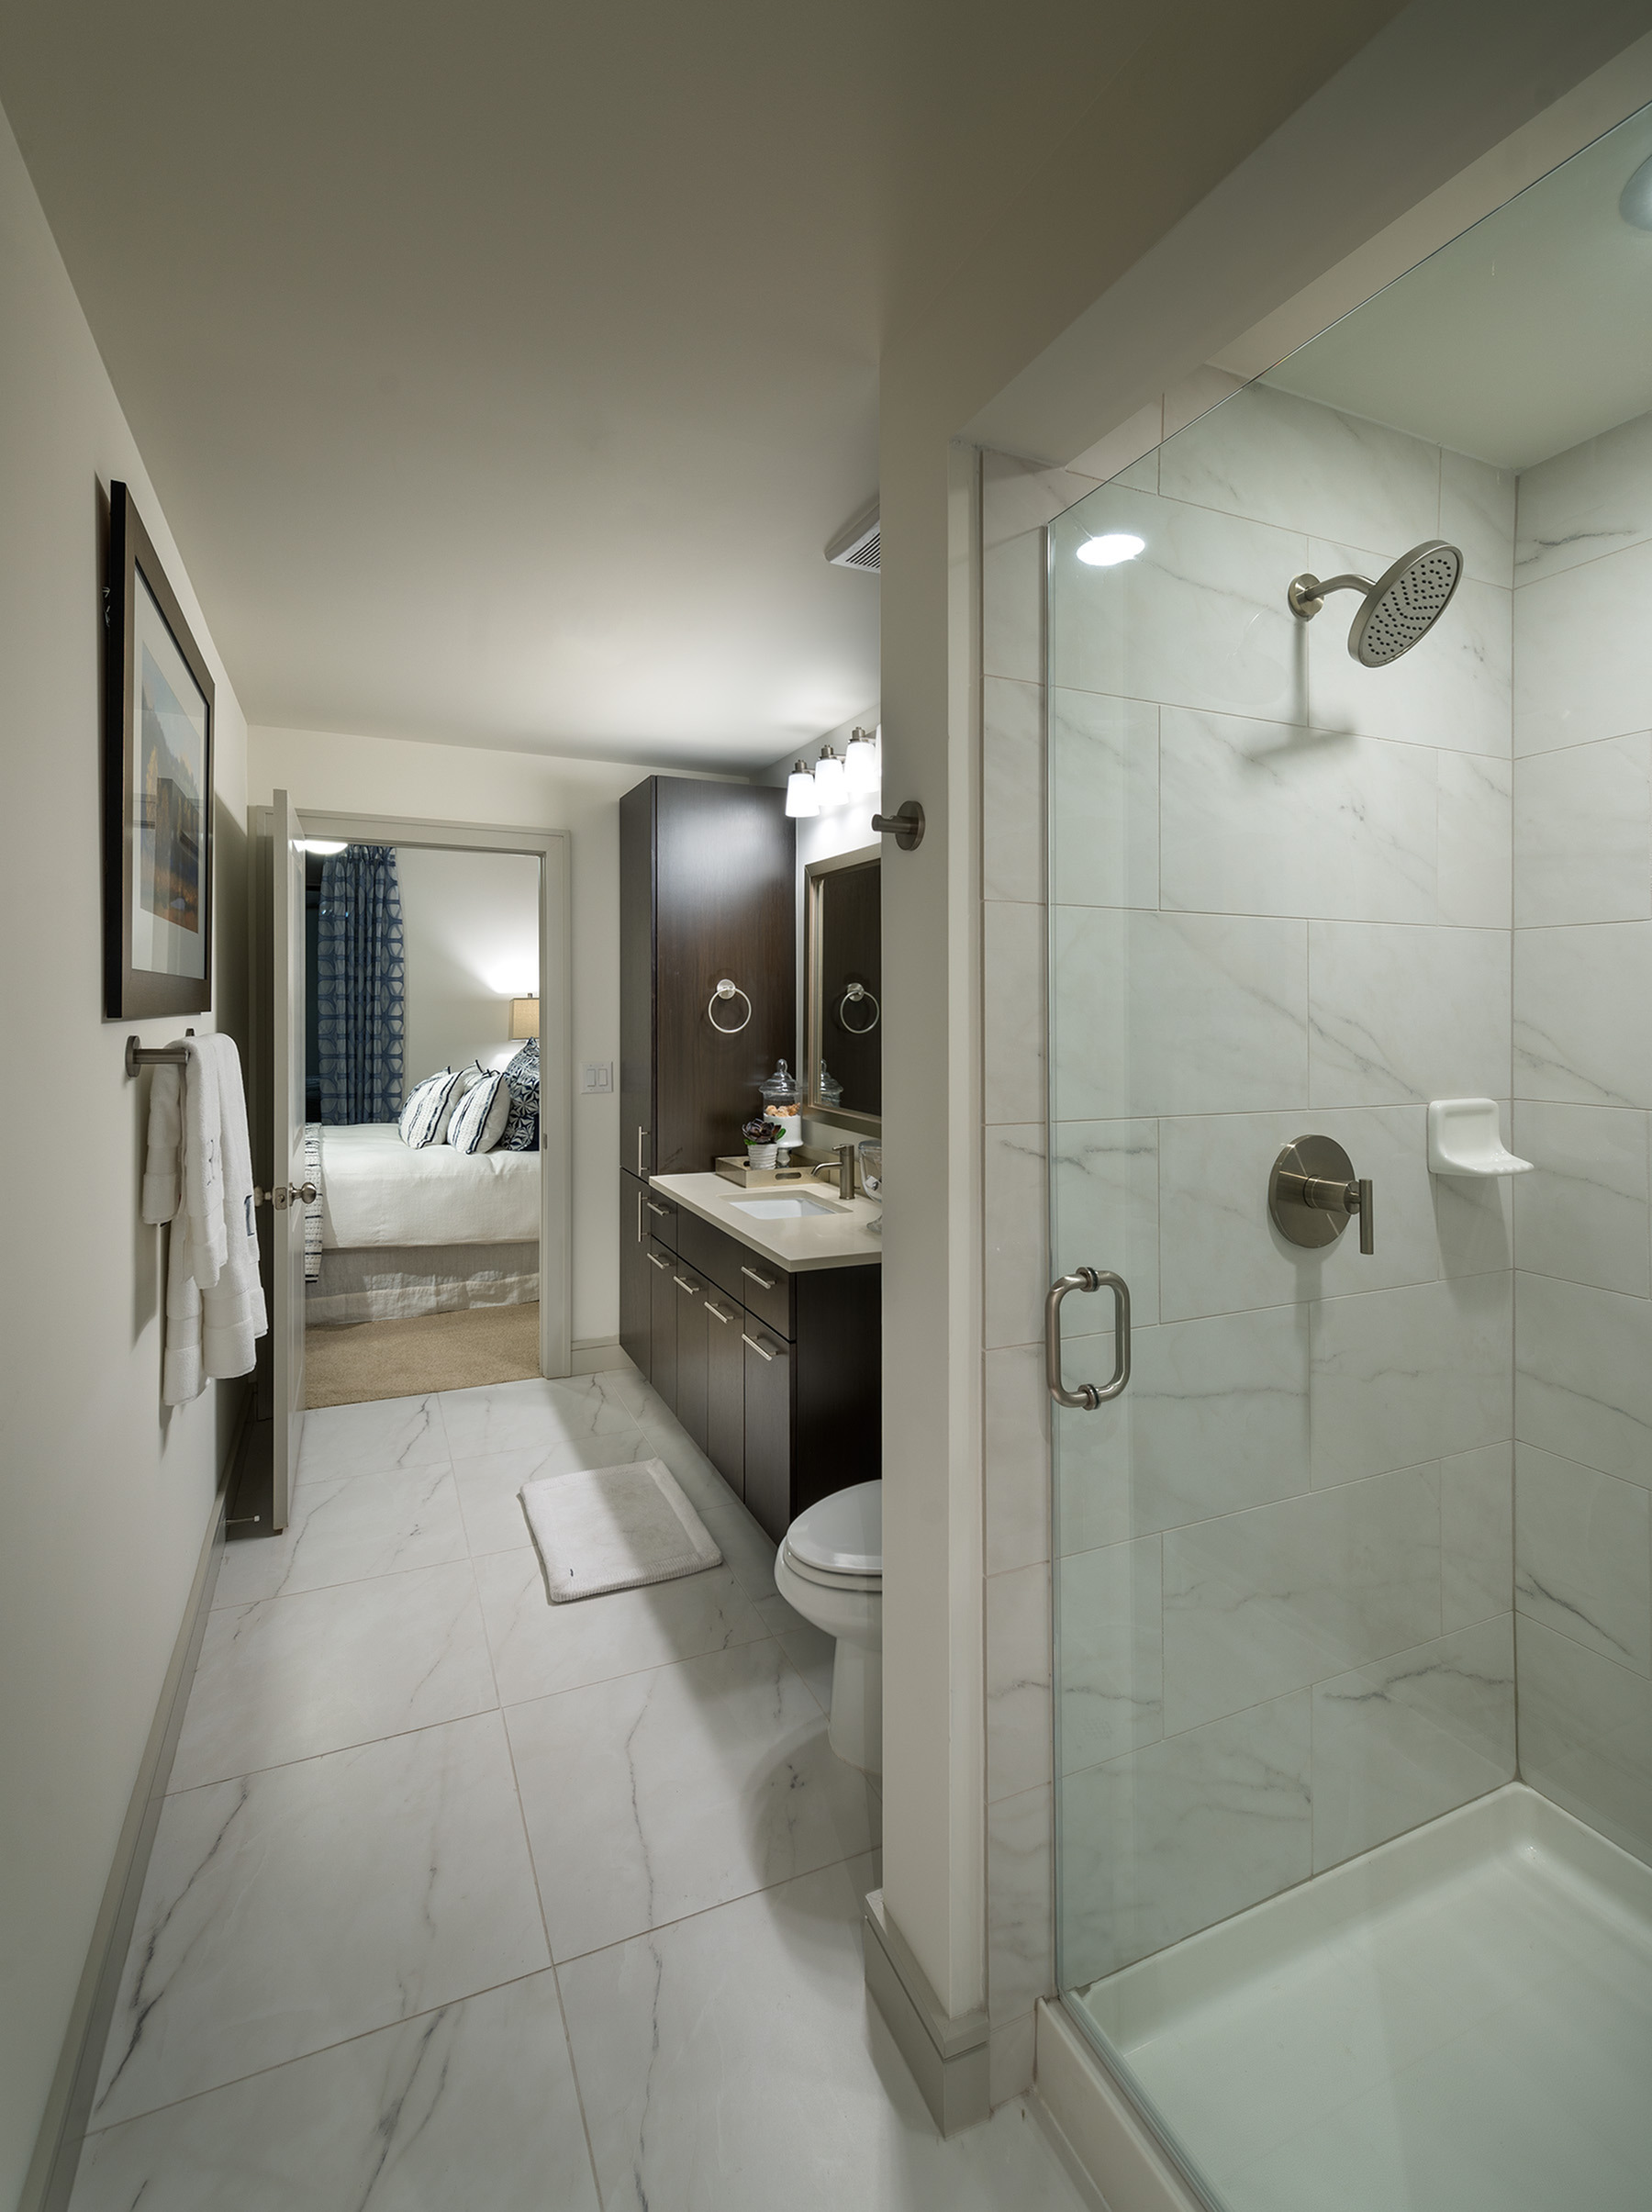 Image of Spa-inspired bathrooms with dual vanities and frameless showers for Hanover Montrose